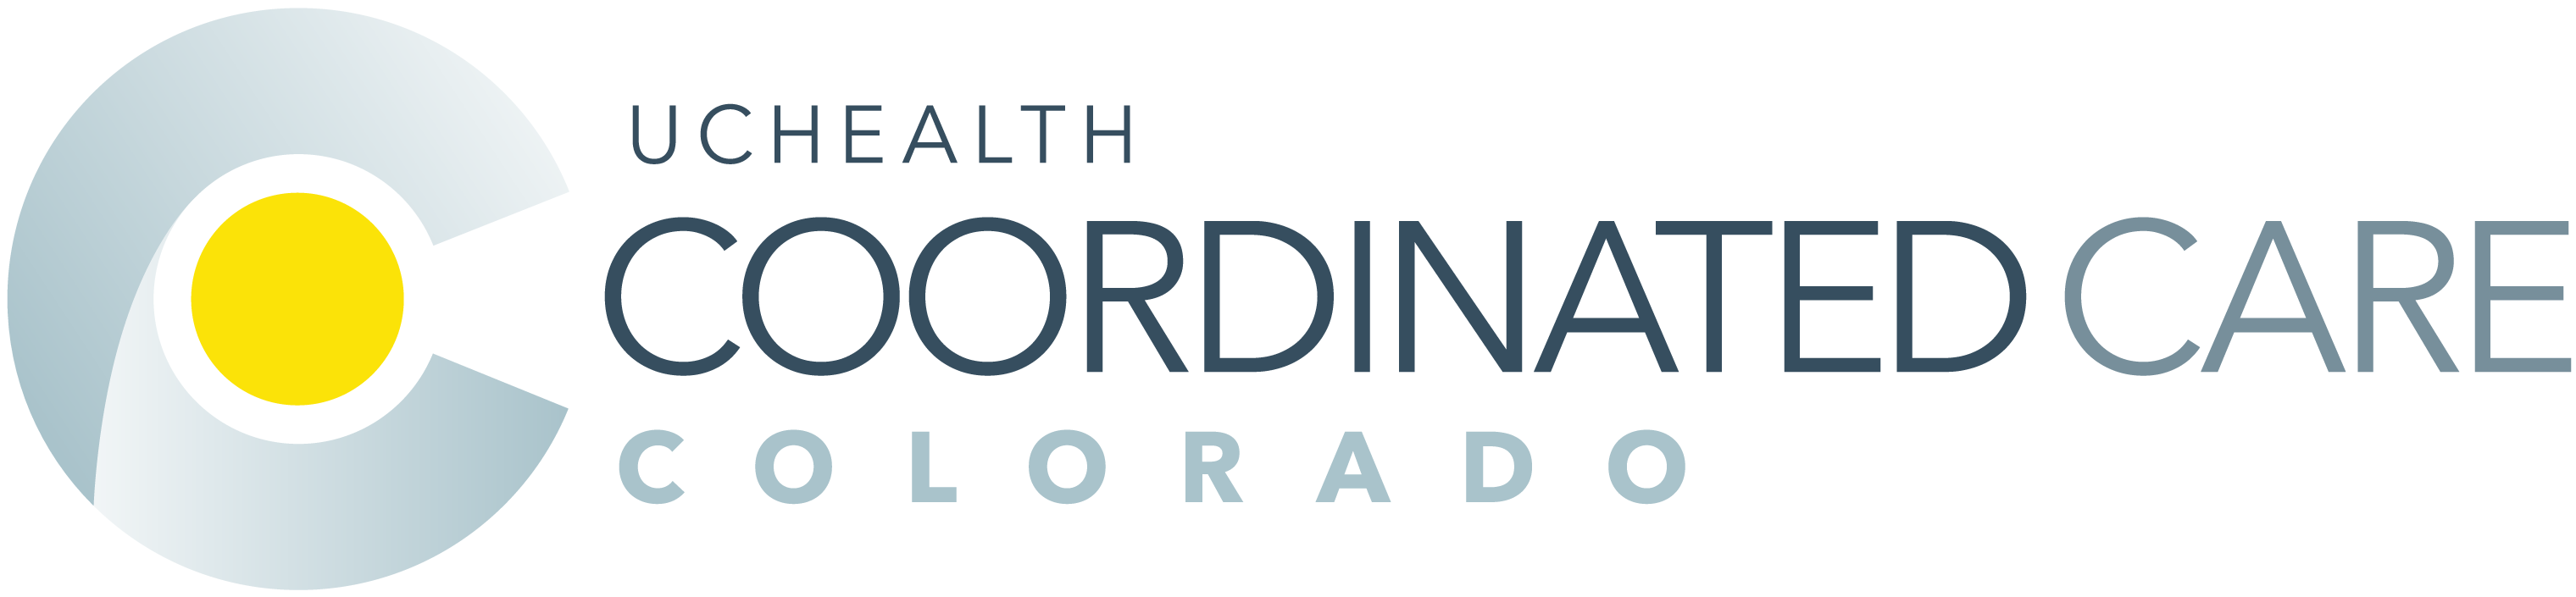 Coordinated Care Colorado Logo